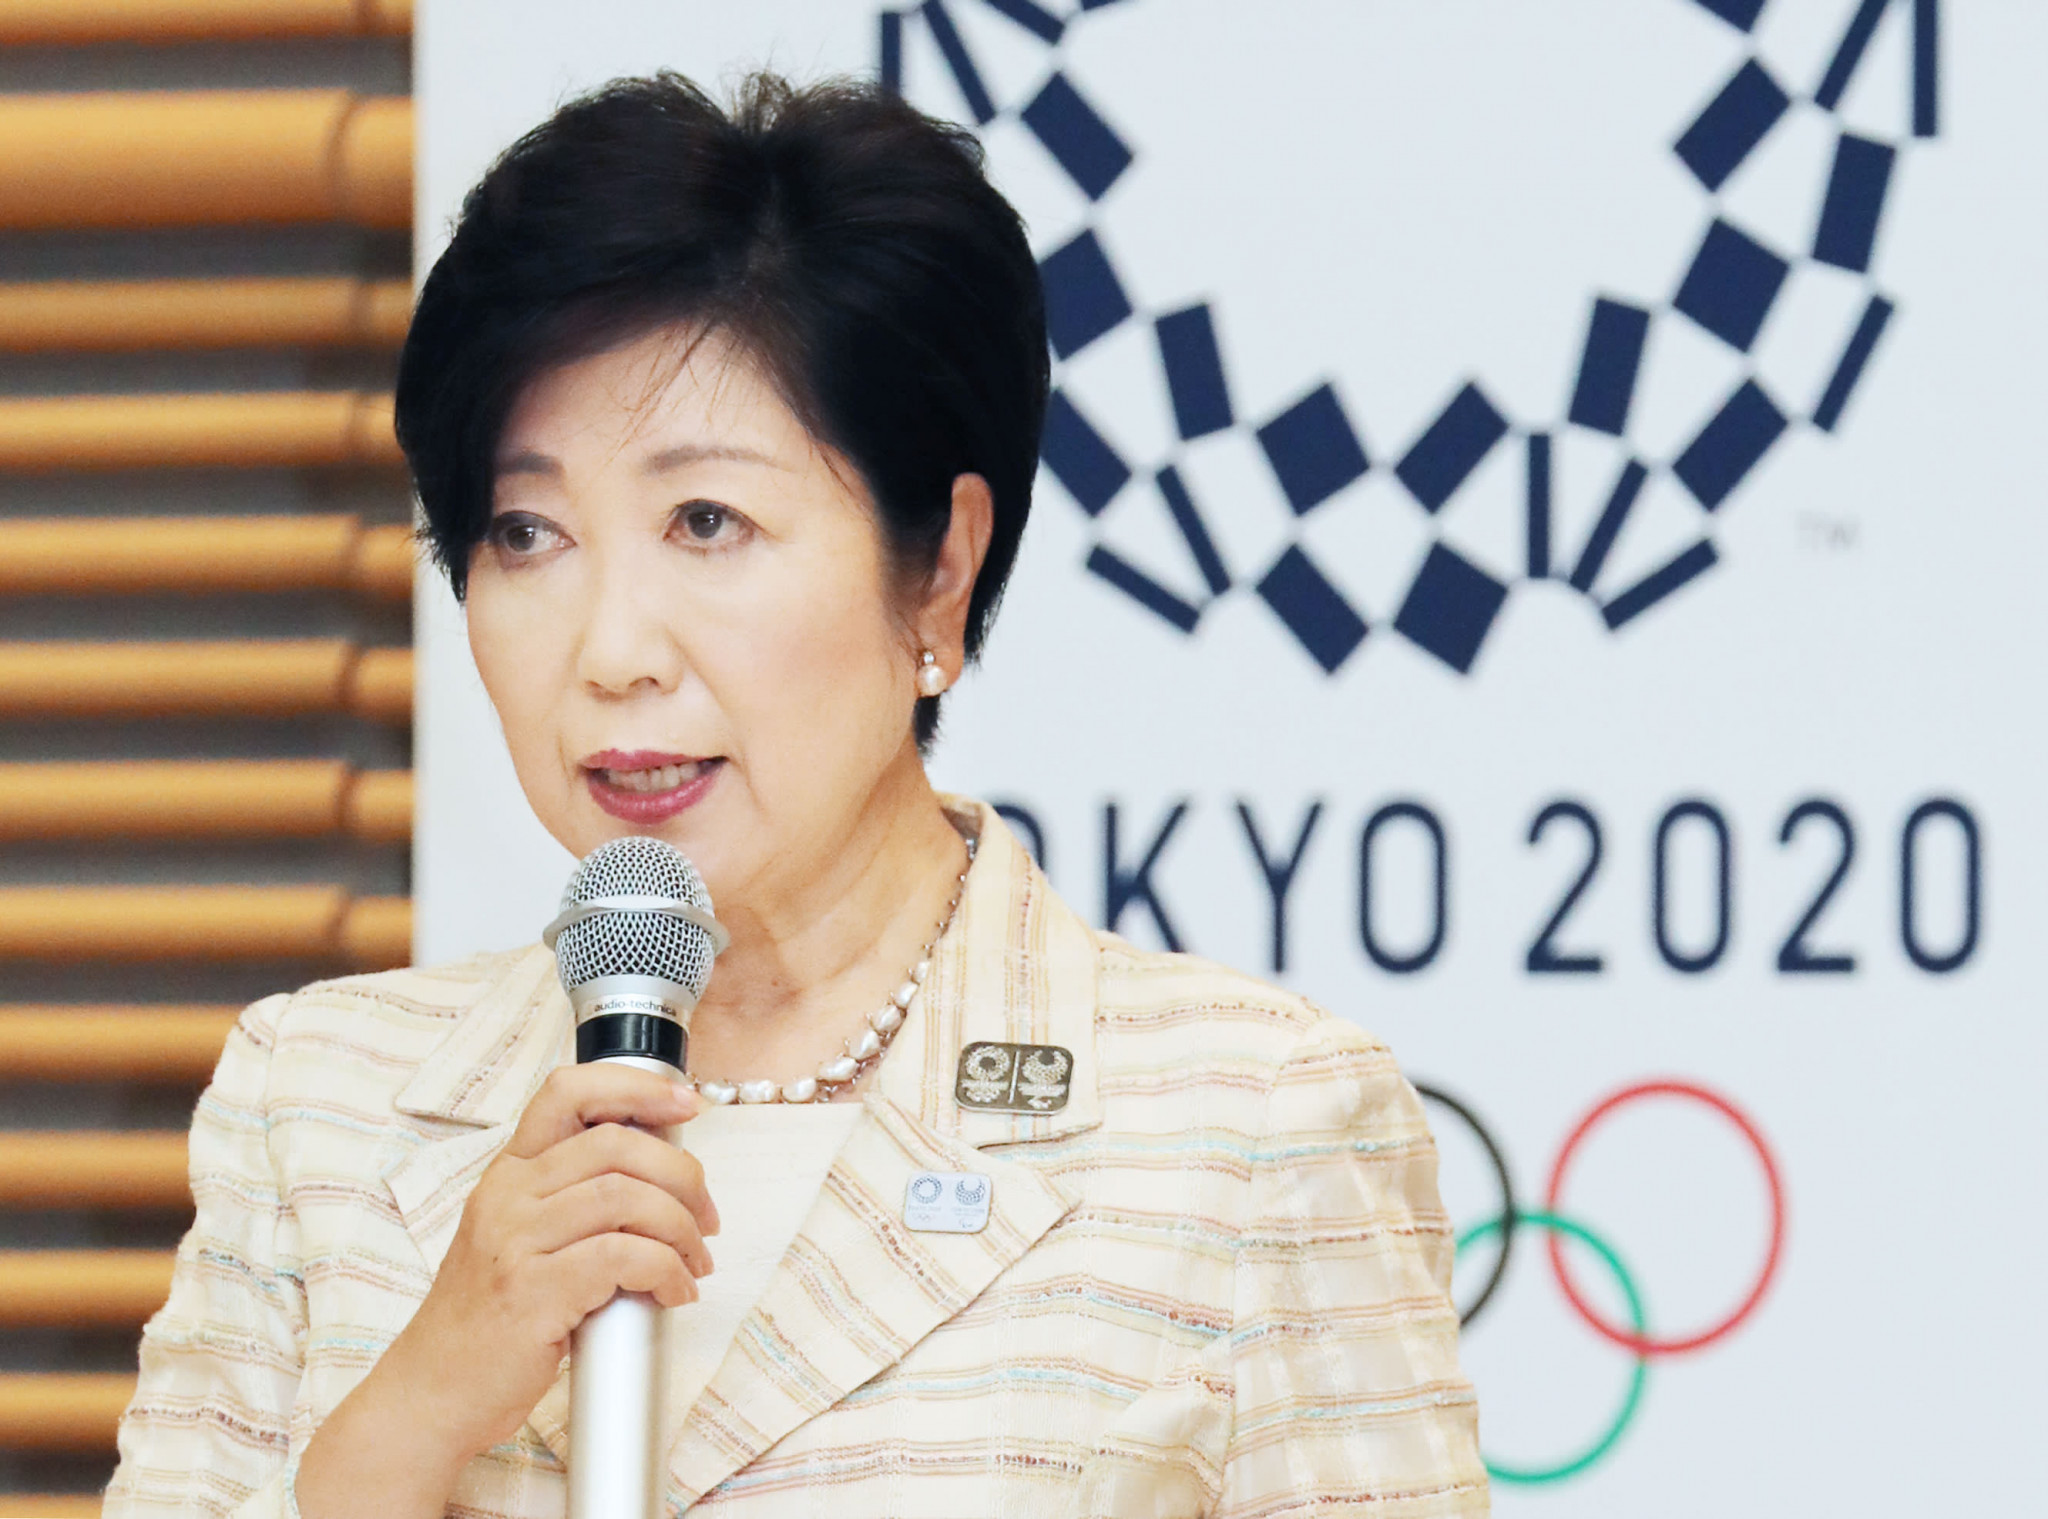 Tokyo Governor Yuriko Koike has said she does not believe cancellation of the Olympics will go ahead ©Getty Images